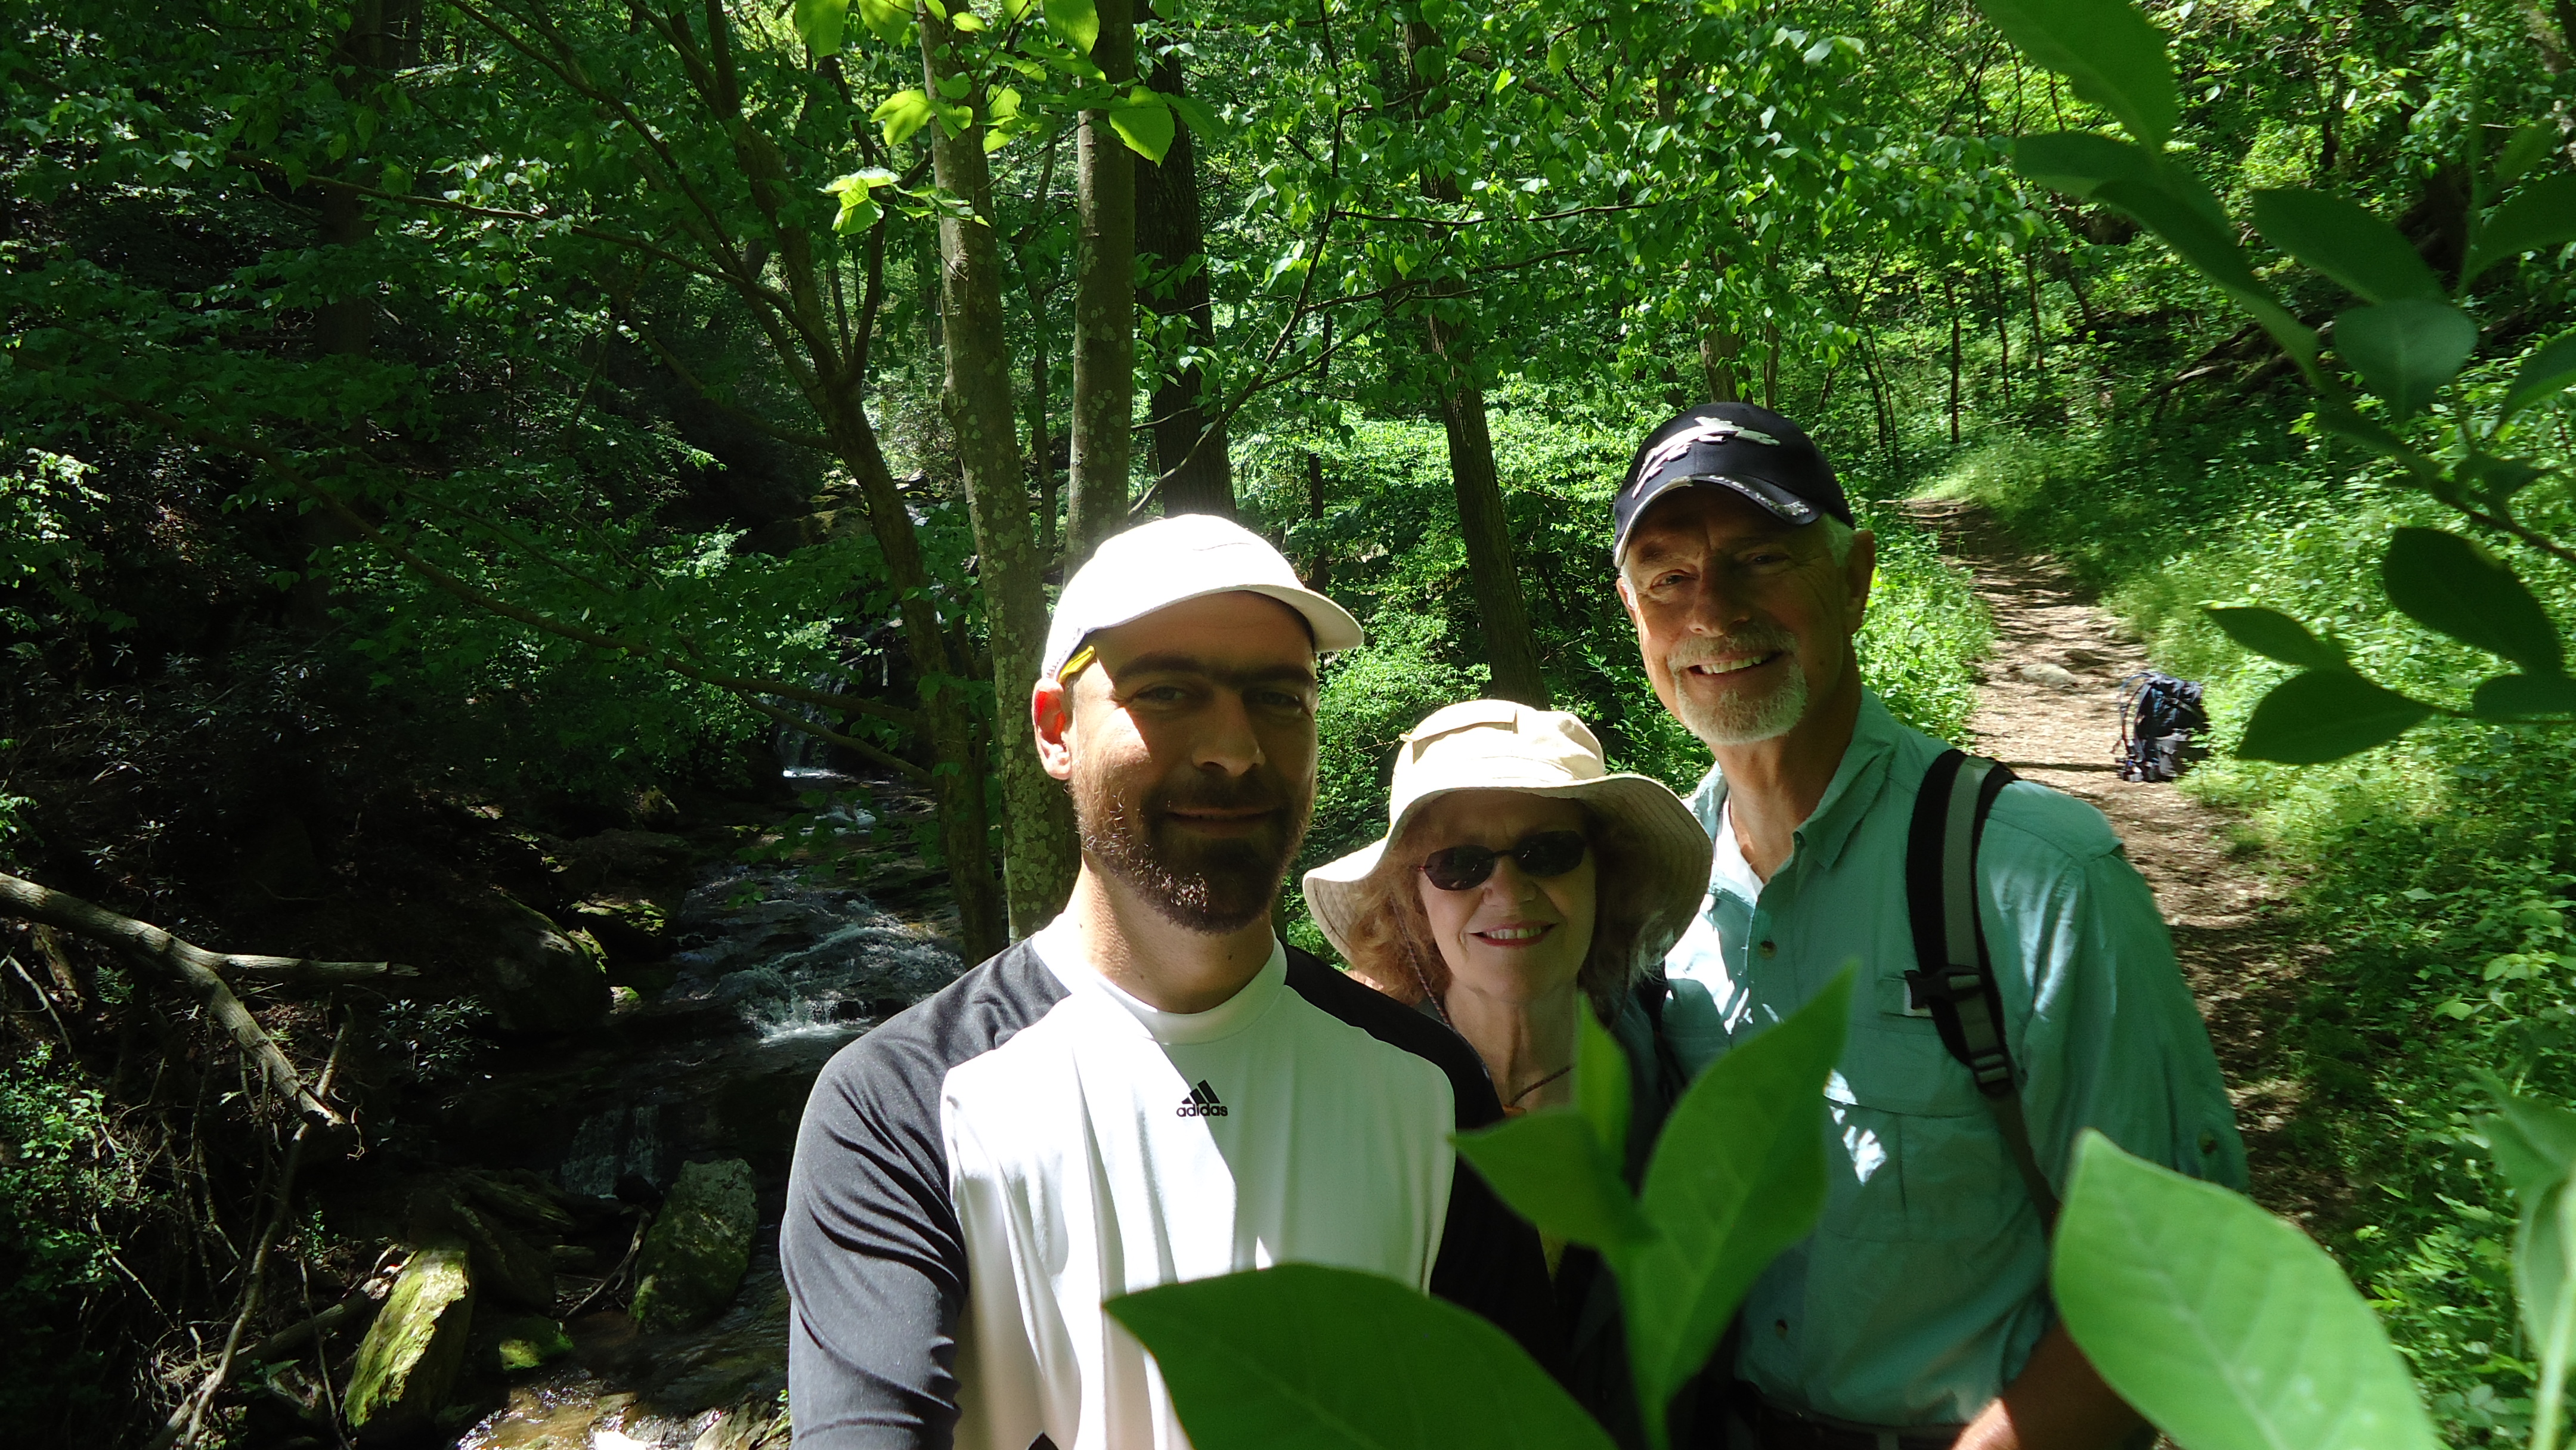 Mother's Day near Holtwood Dam